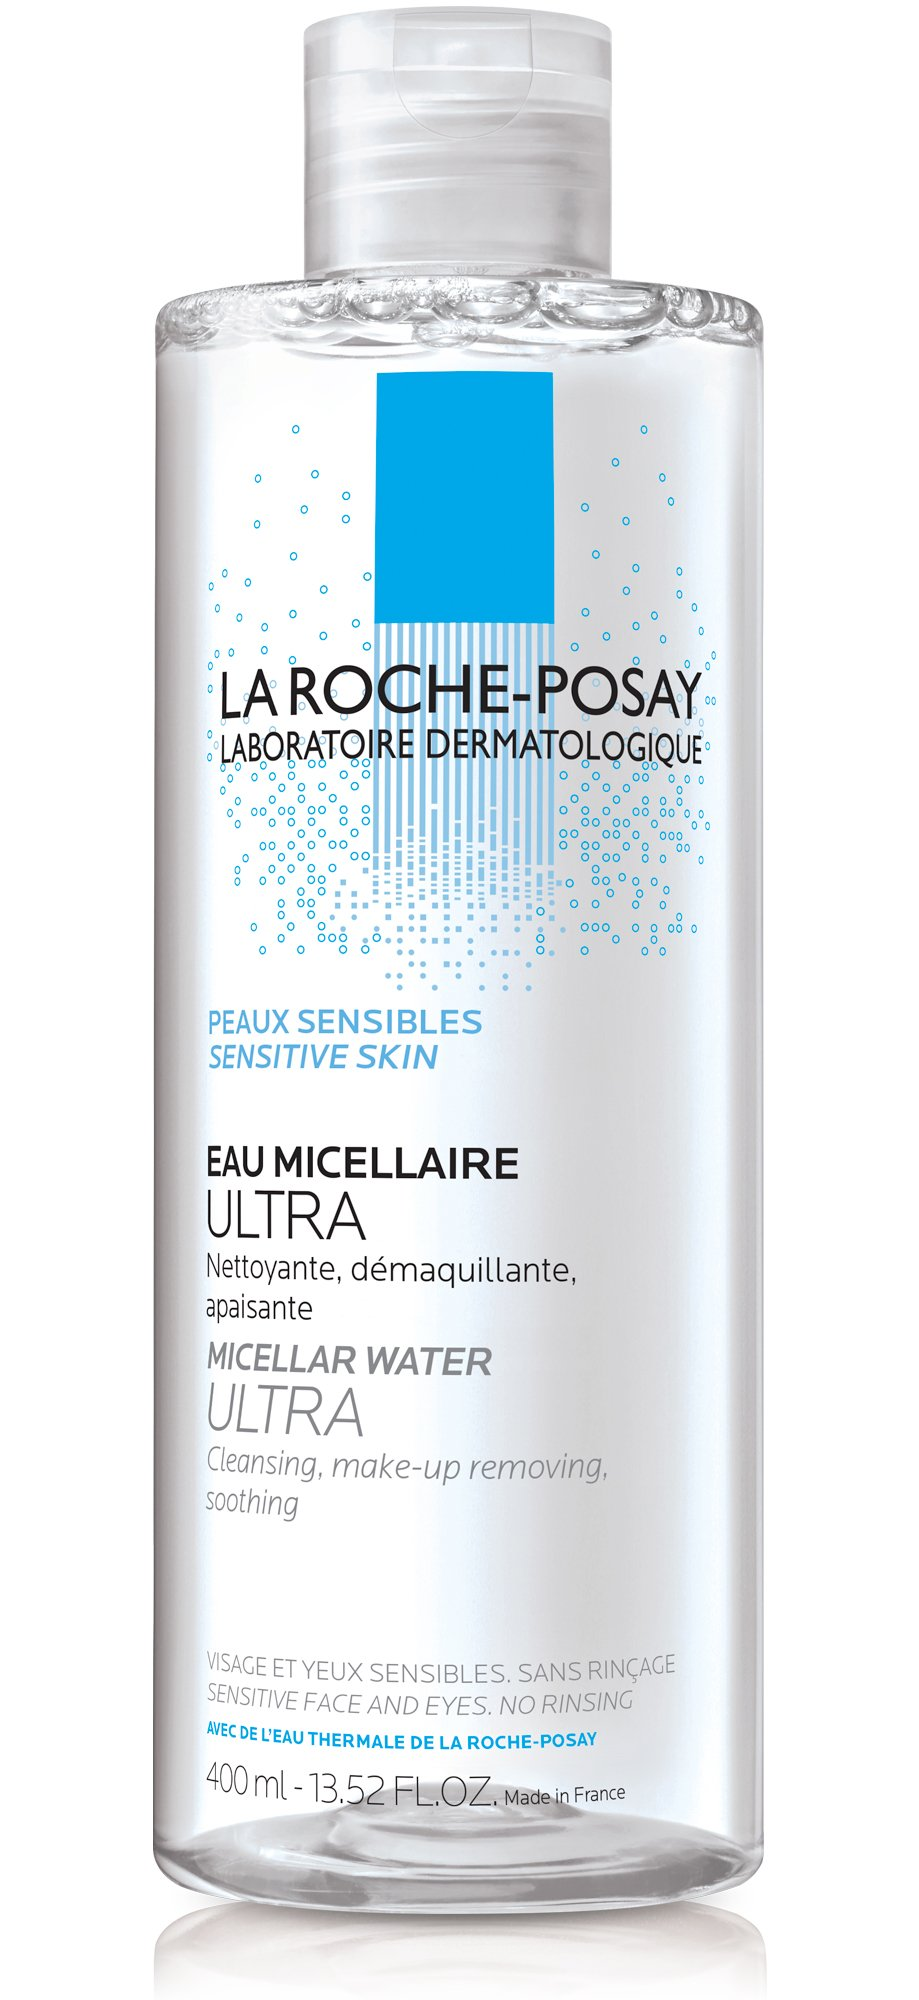 La Roche-Posay Micellar Cleansing Water and Makeup Remover for Sensitive Skin